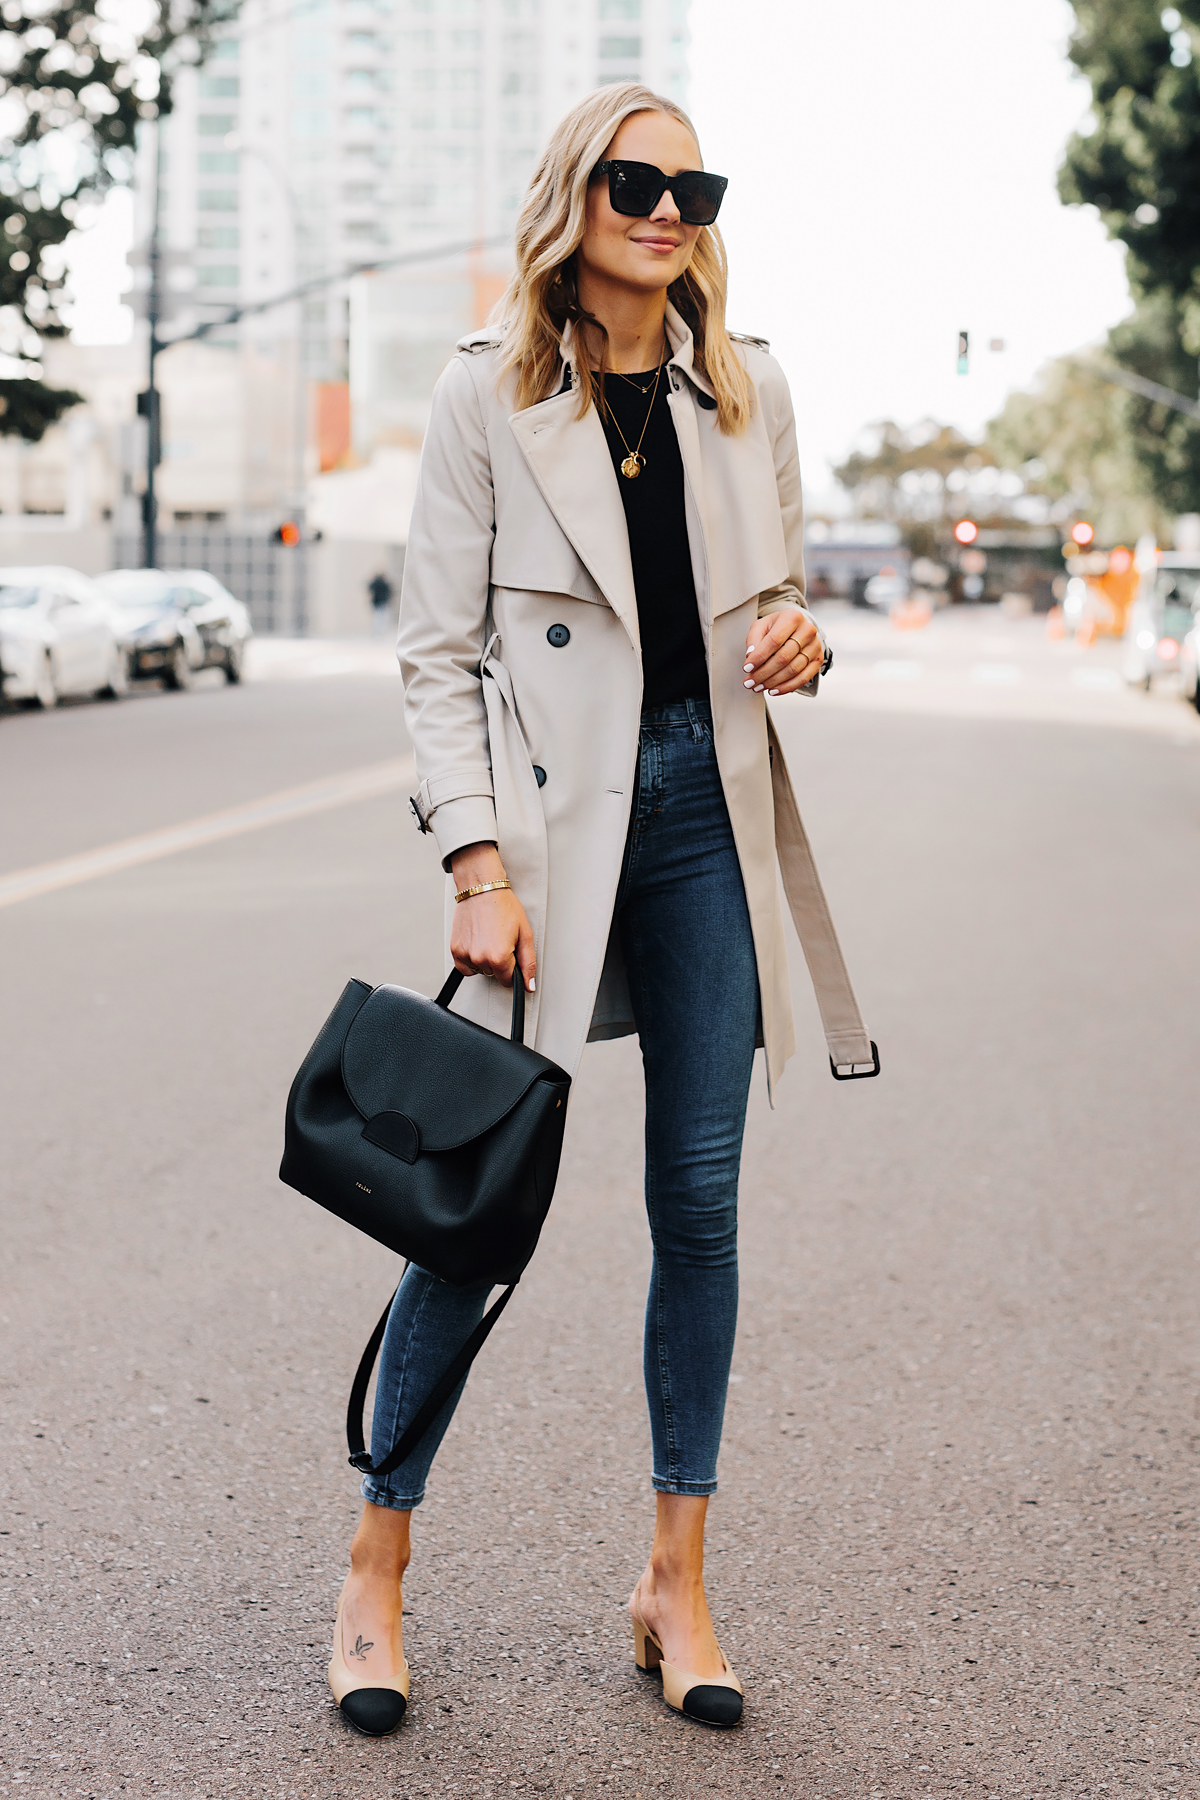 Blonde Woman Wearing Trench Coat Black Sweater Denim Skinny Jeans Chanel Slingbacks Polene Number One Handbag Monochrome Black Fashion Jackson San Diego Fashion Blogger Street Style